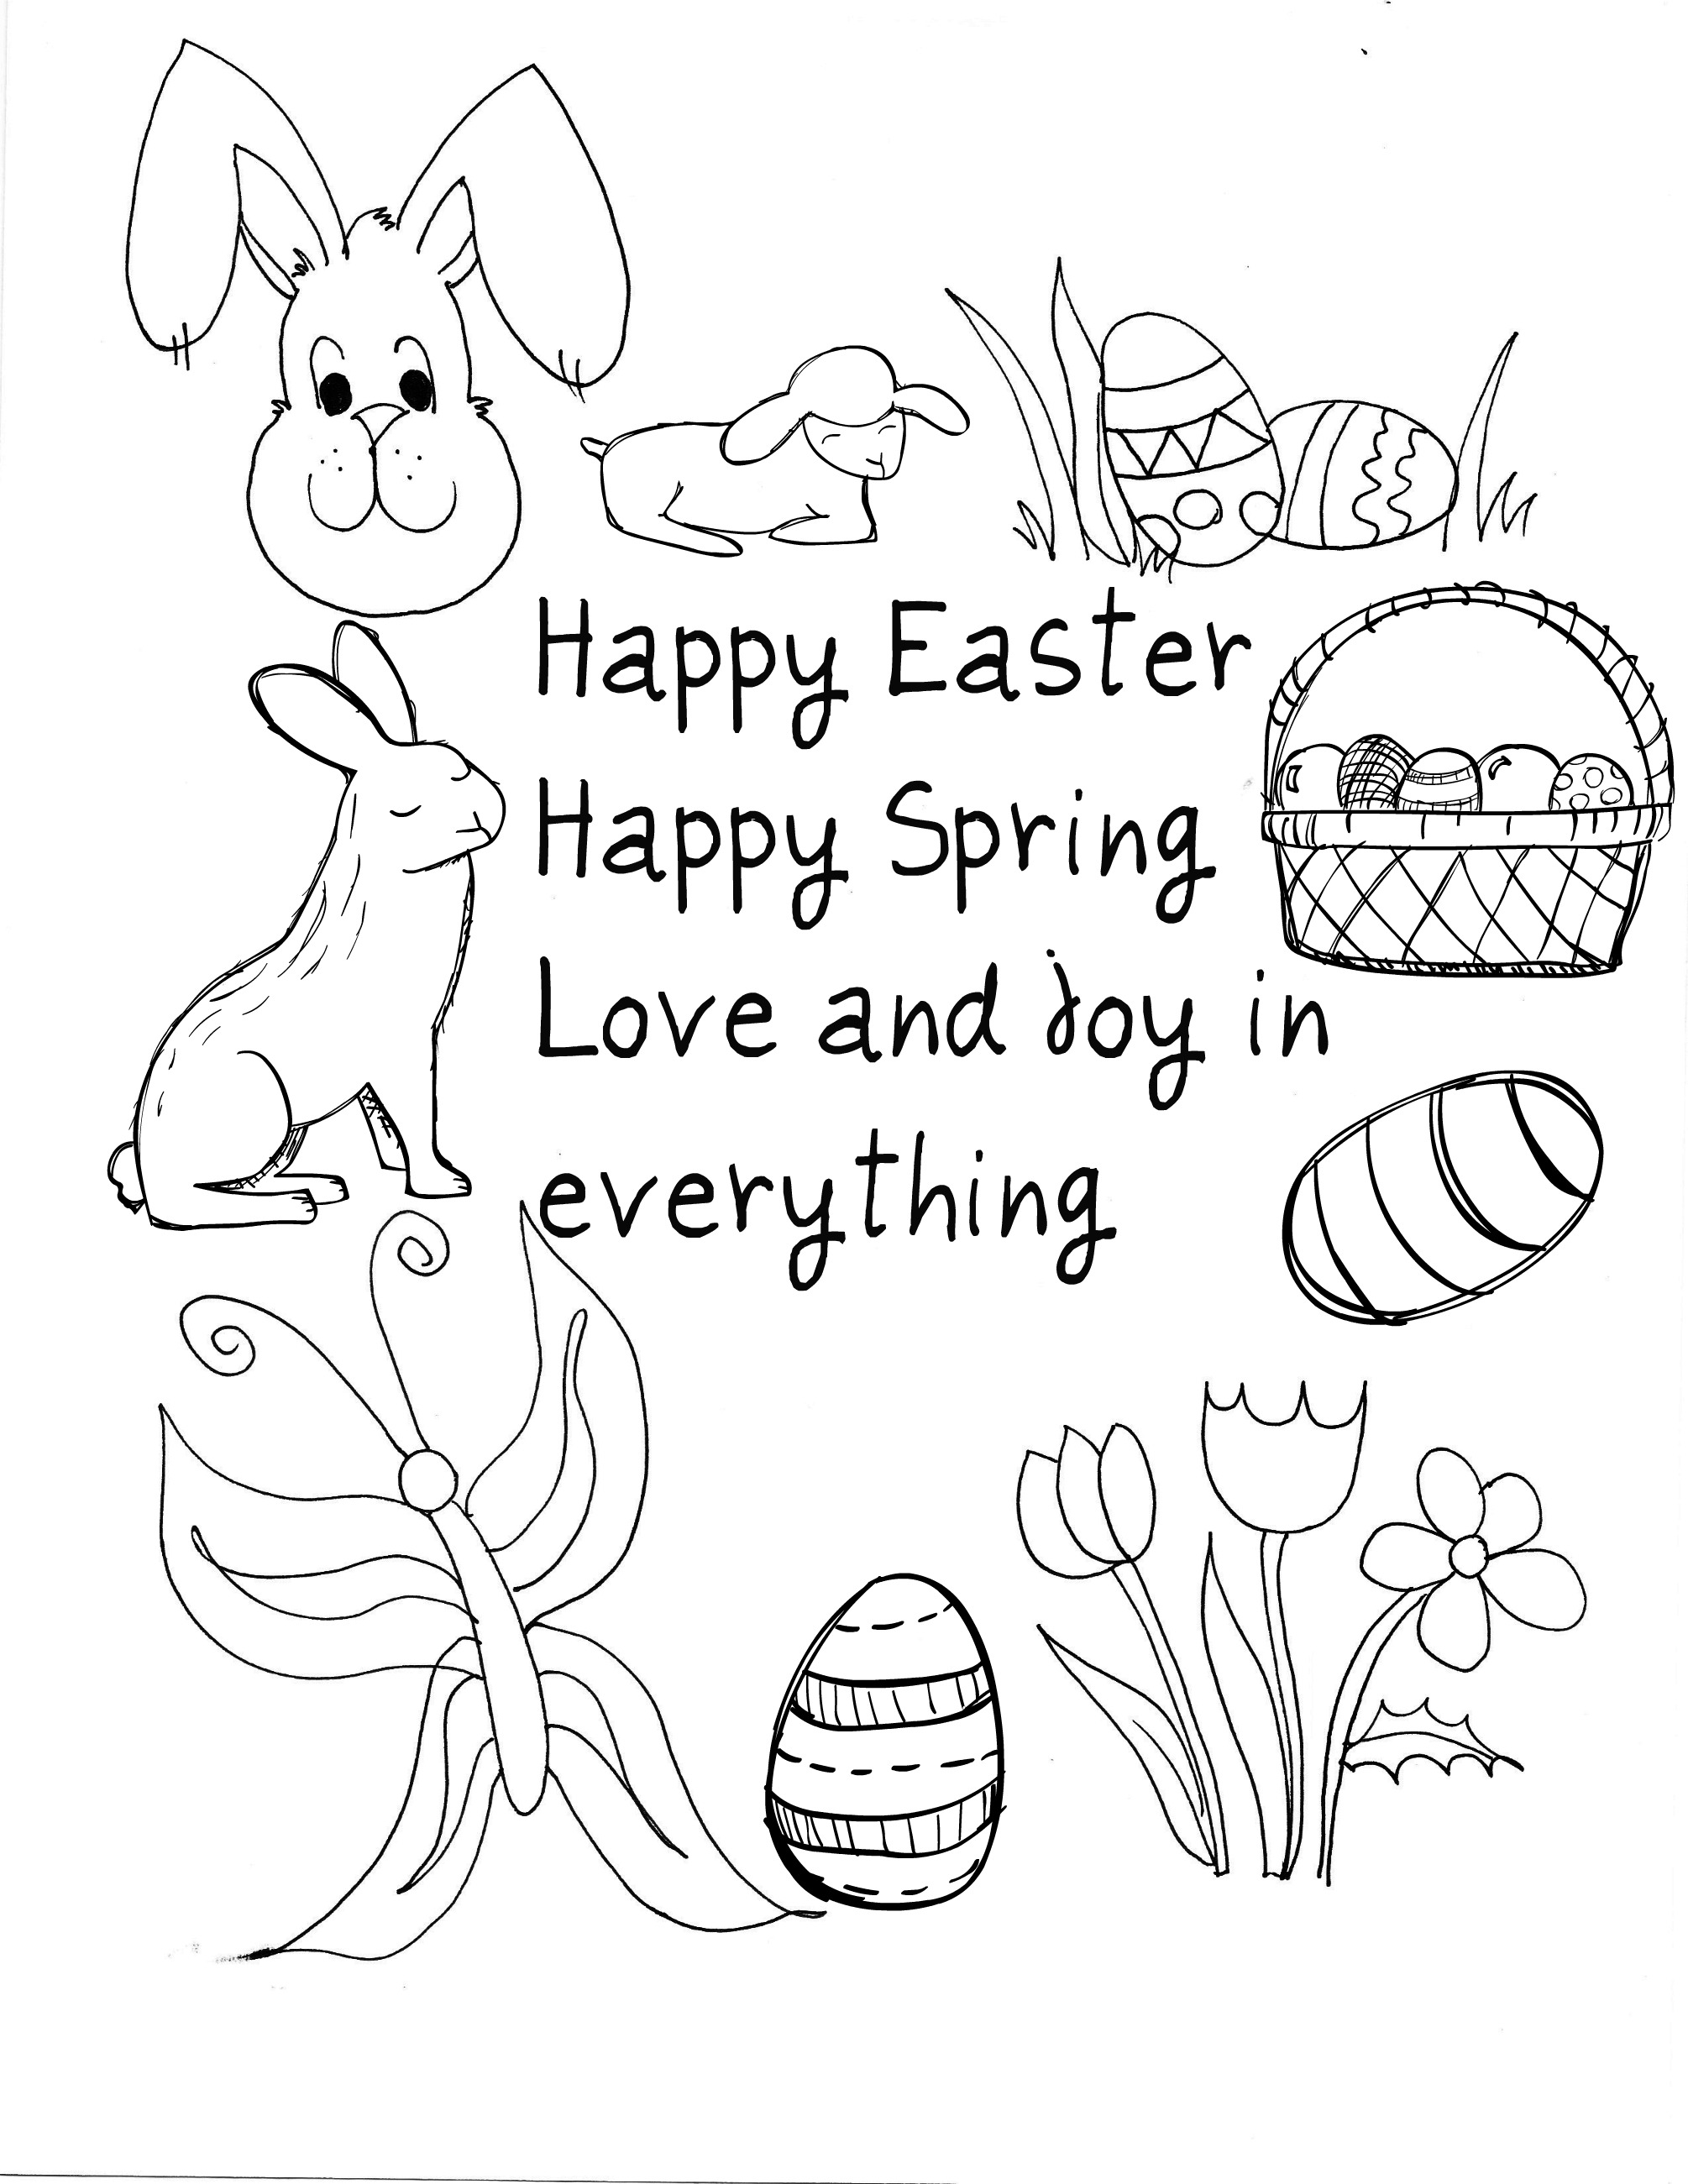 easter cards colouring easter cards with lovely bunnies coloring page free easter colouring cards